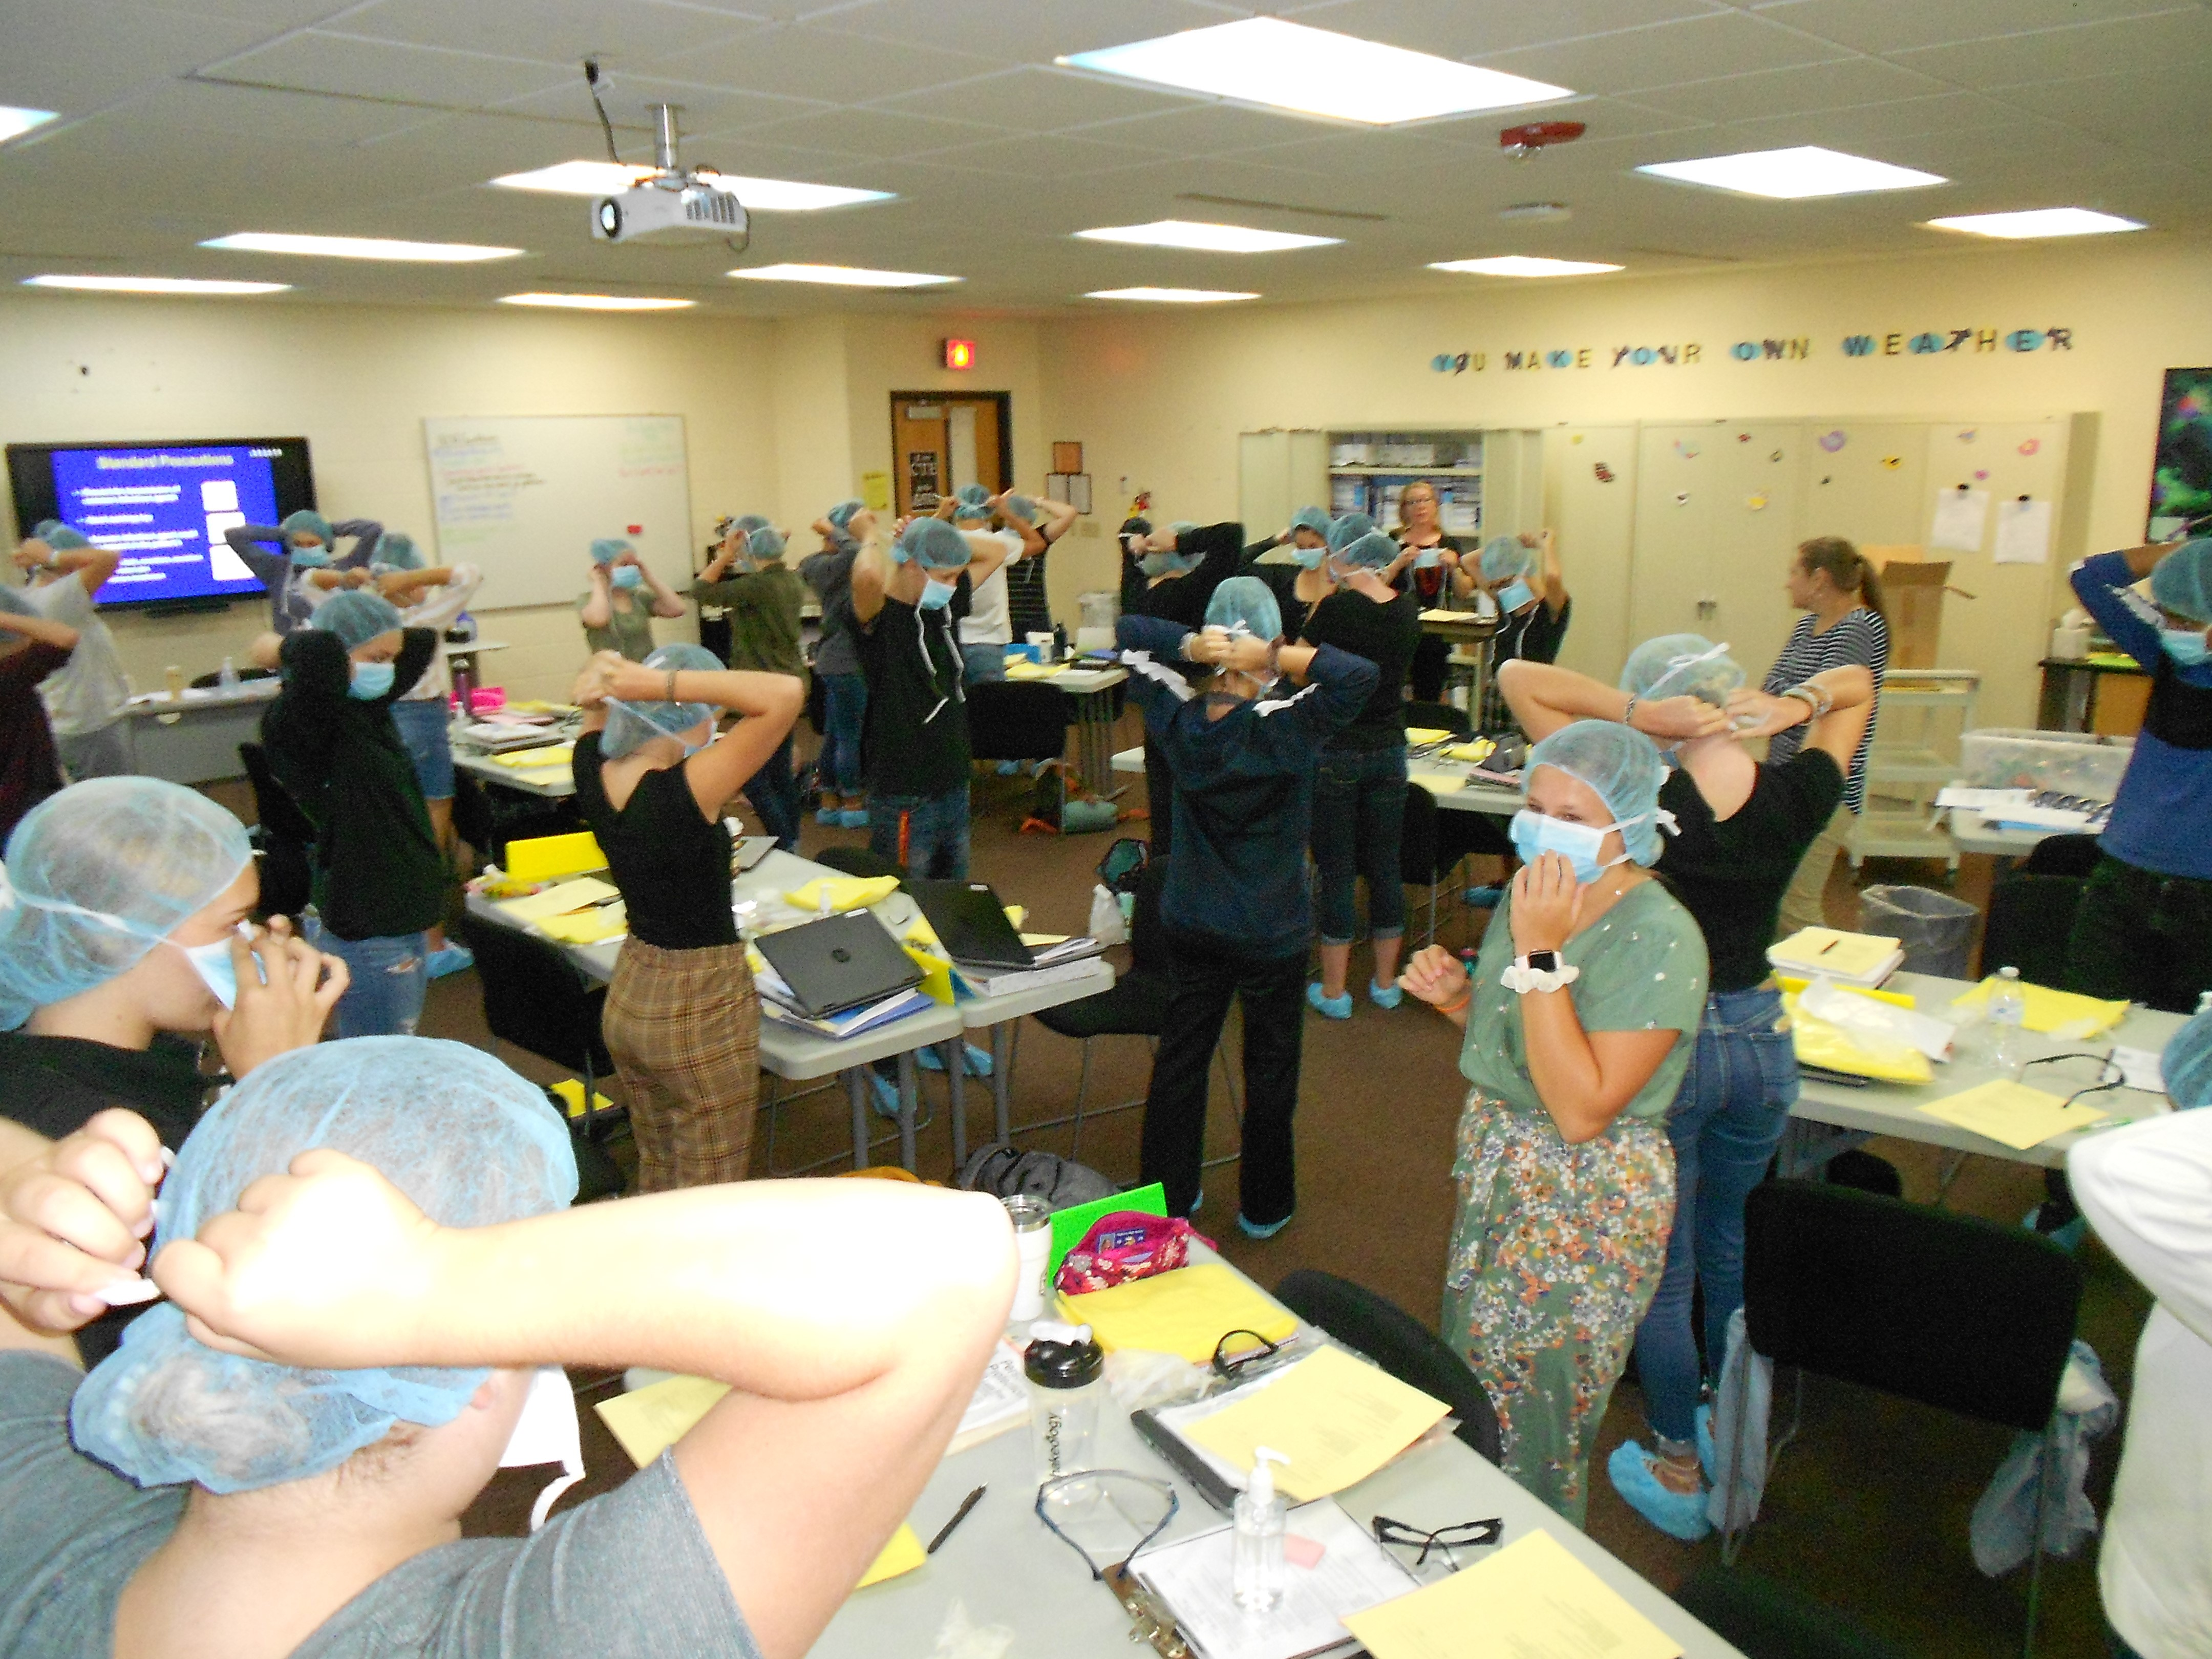 Students putting on gowns and gloves to get ready for training.